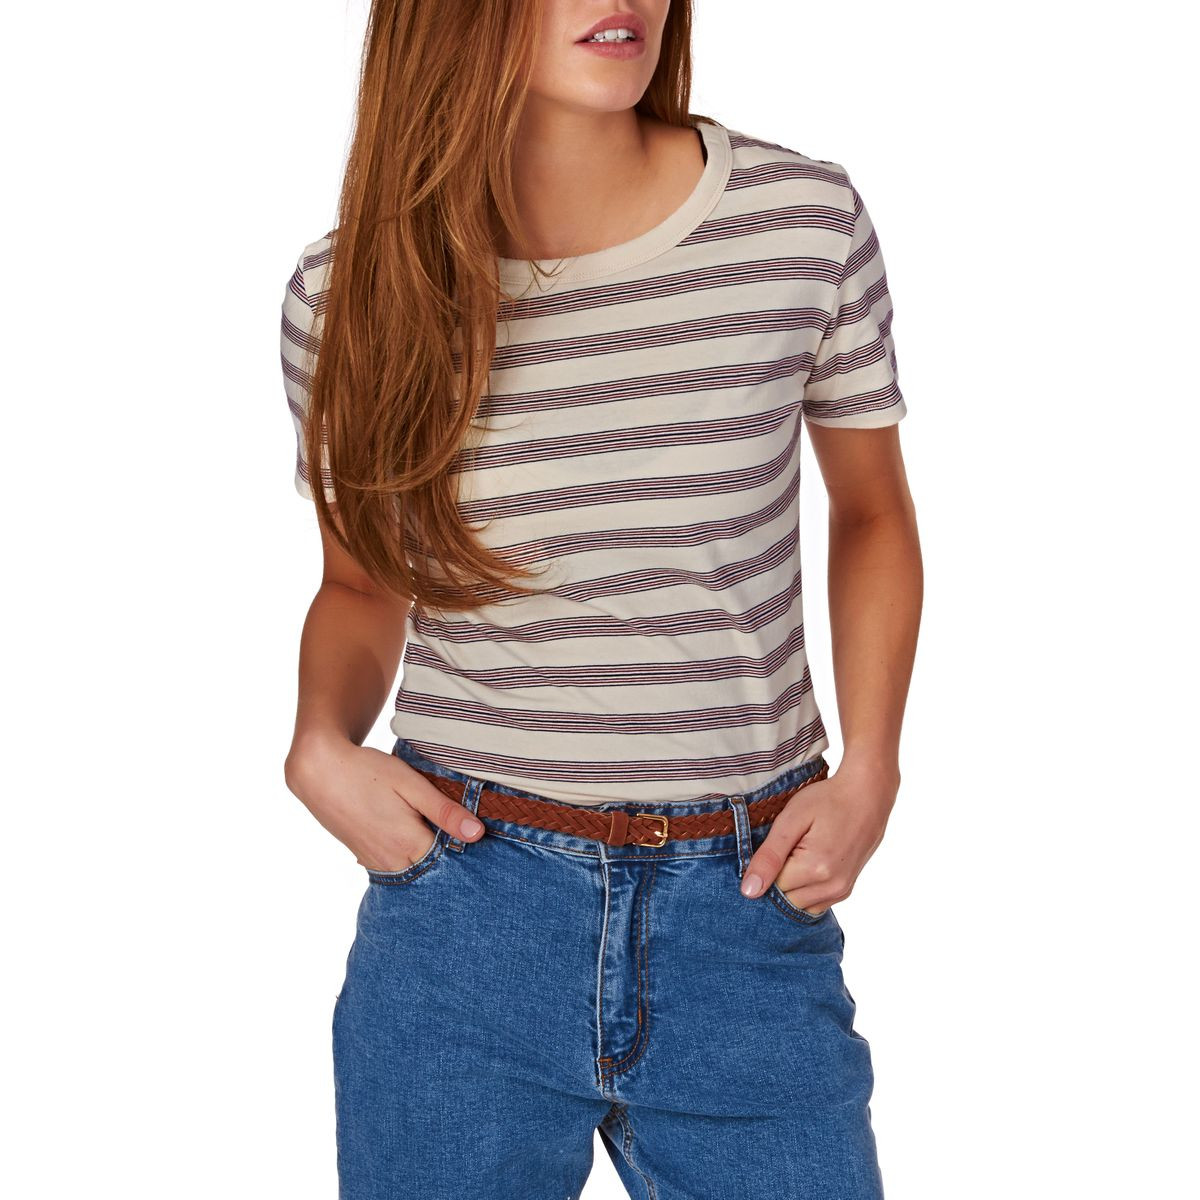 T Shirt Yarn for Sale New the Hidden Way Yarn Dyed Stripe Tee Stripe Of Perfect 40 Models T Shirt Yarn for Sale